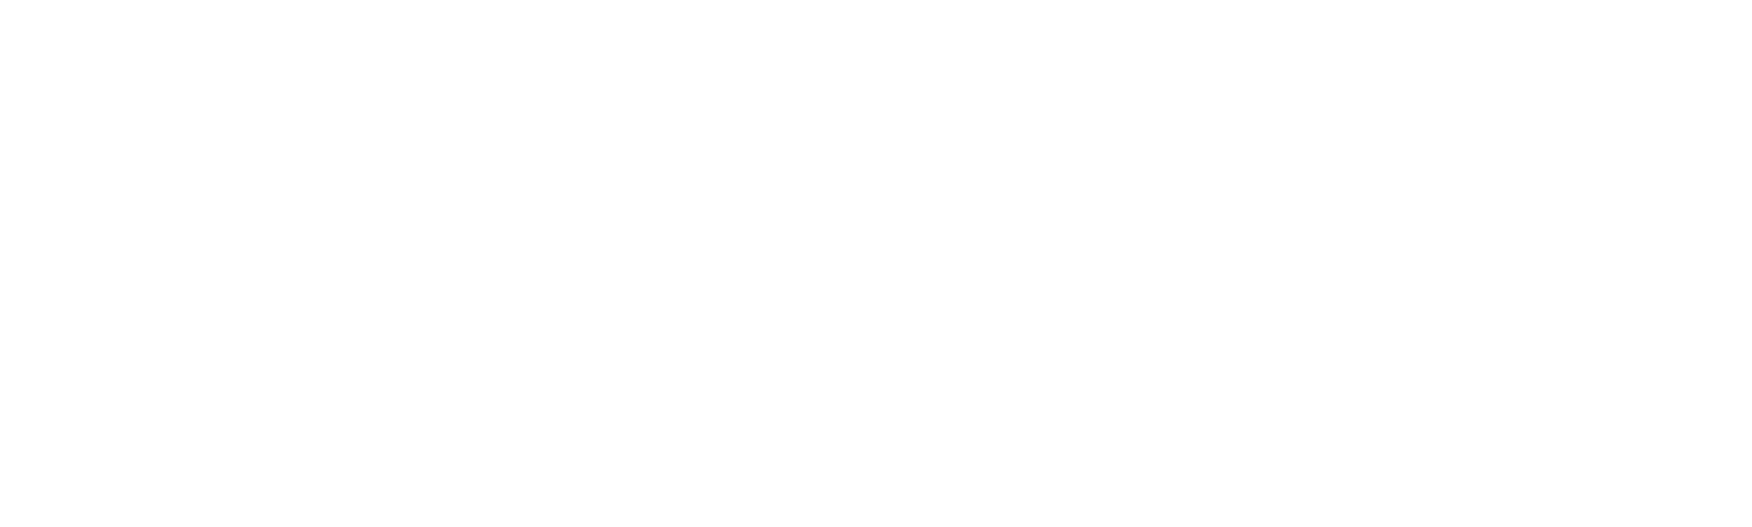 Le Moulin des Costieres